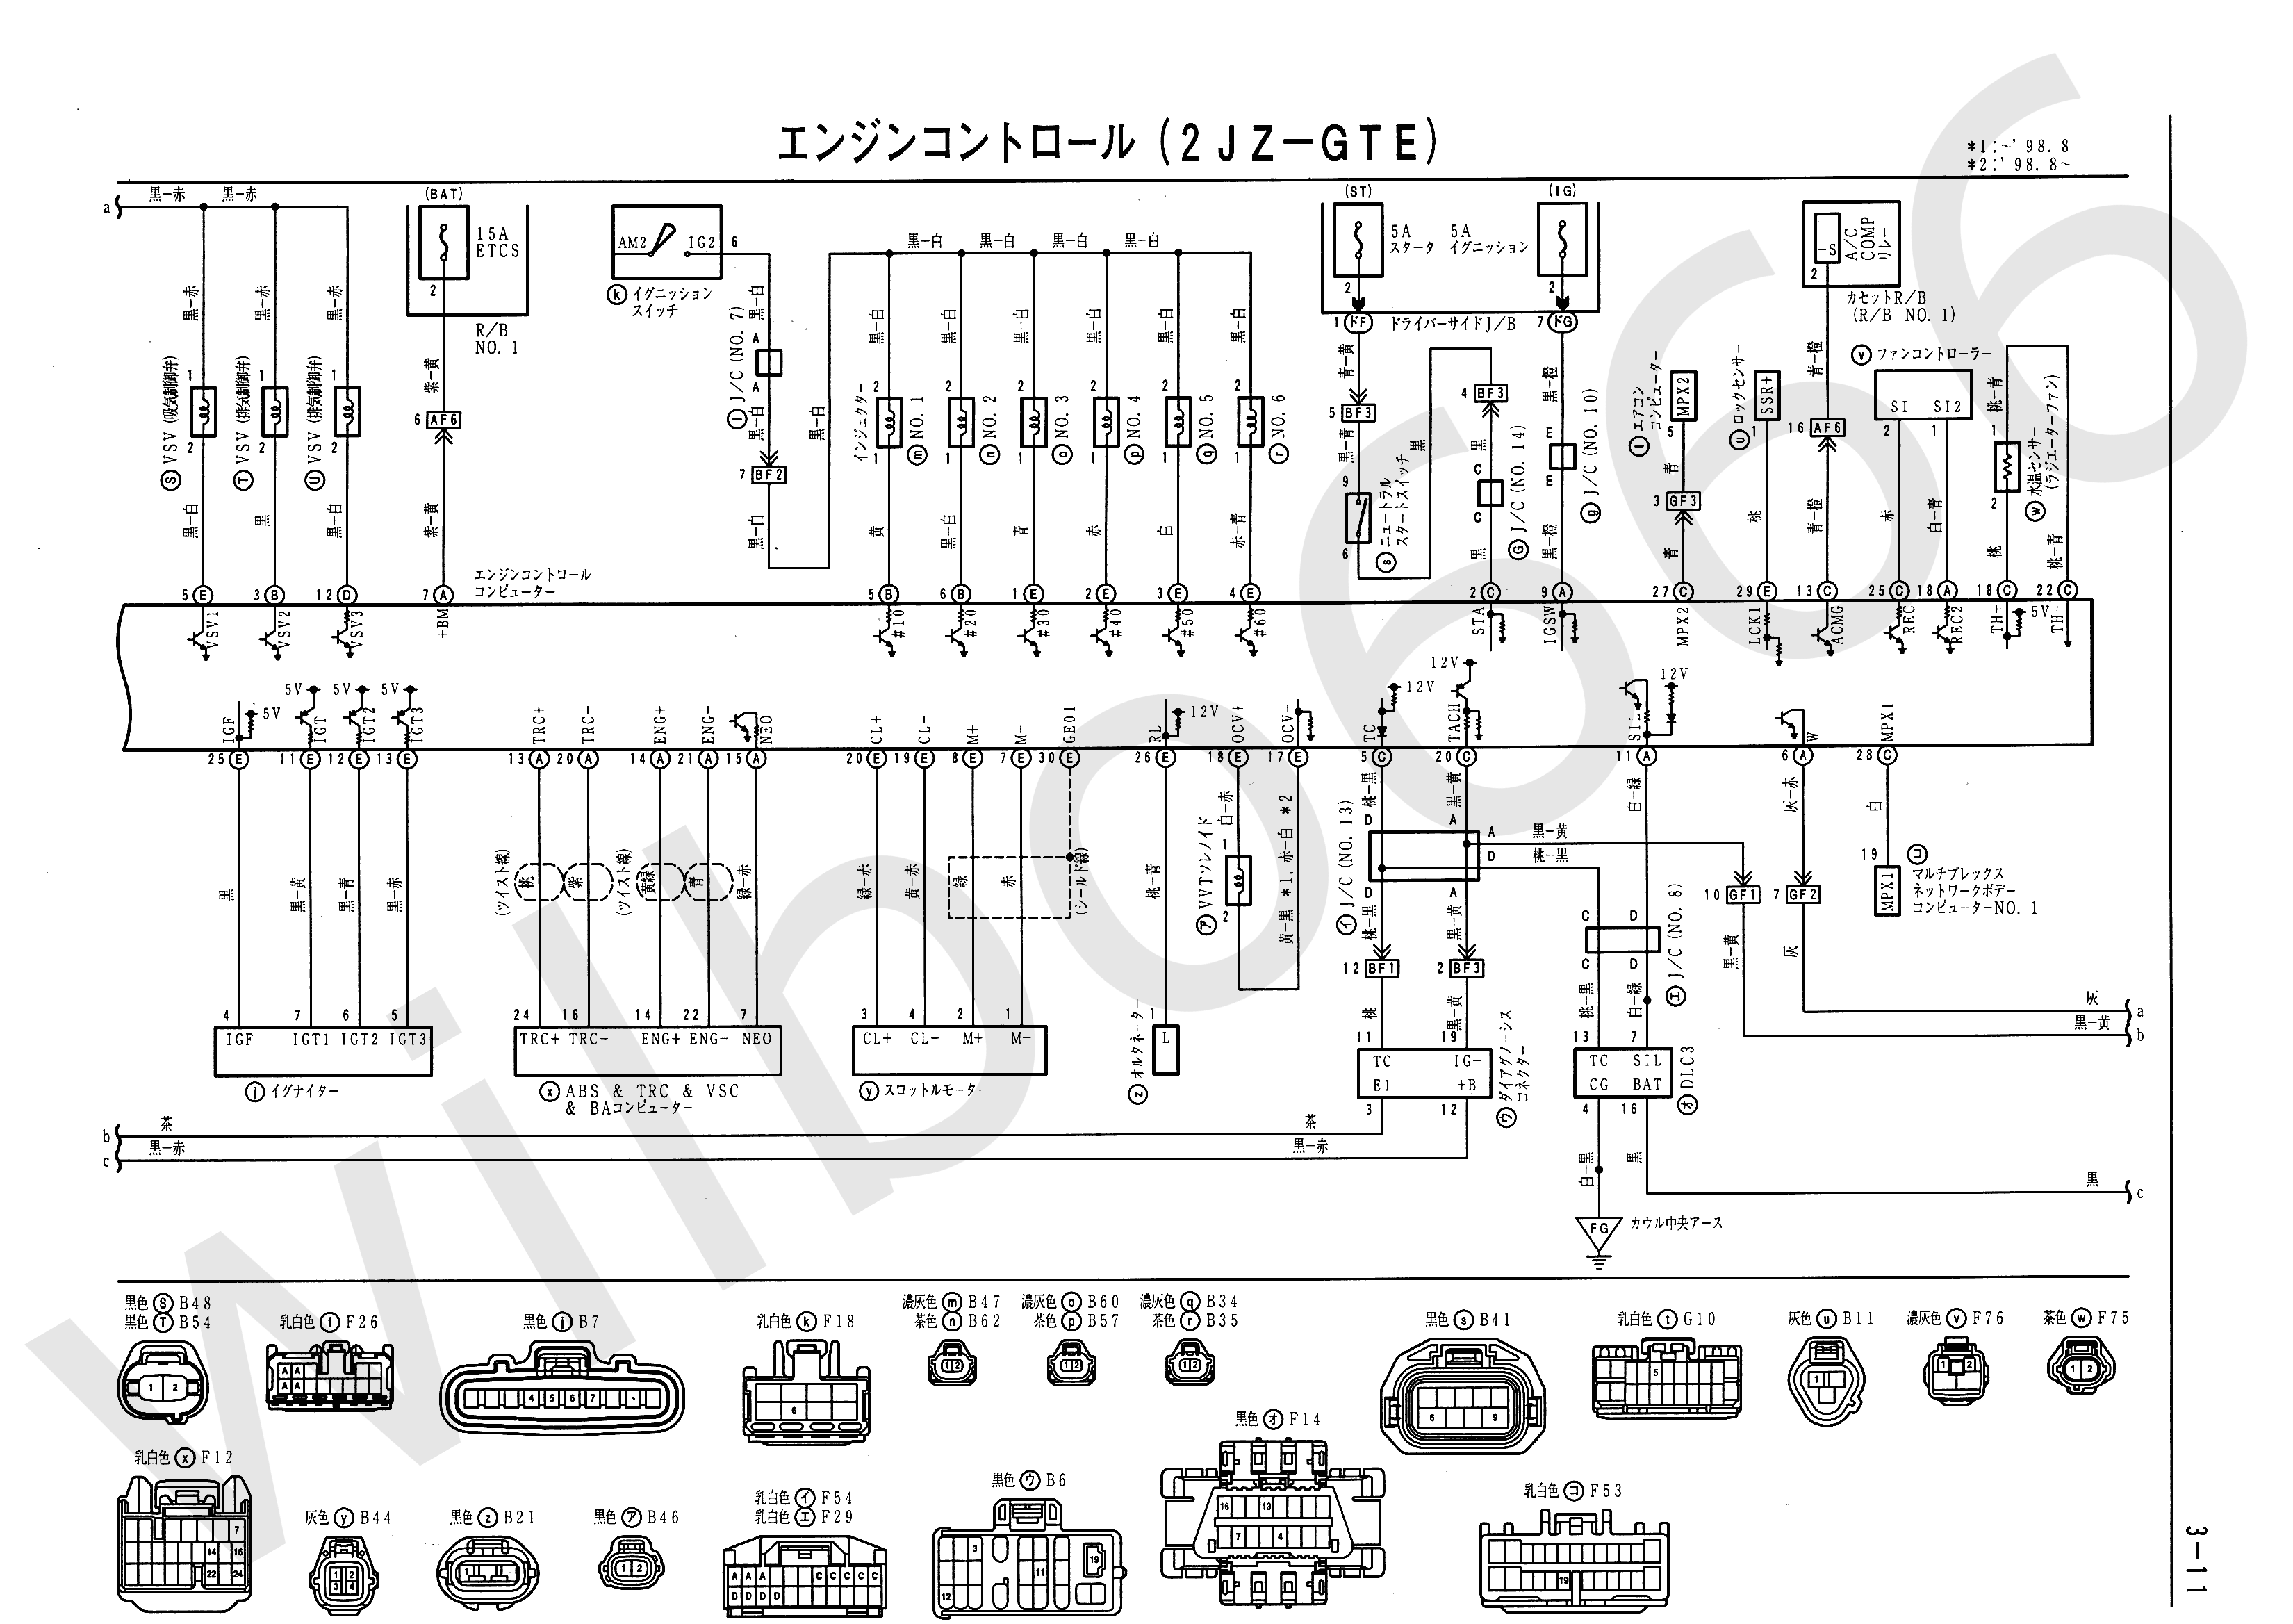 2004 sienna jbl wiring diagram wirdig toyota 20 pin radio wiring harness diagram toyota engine image